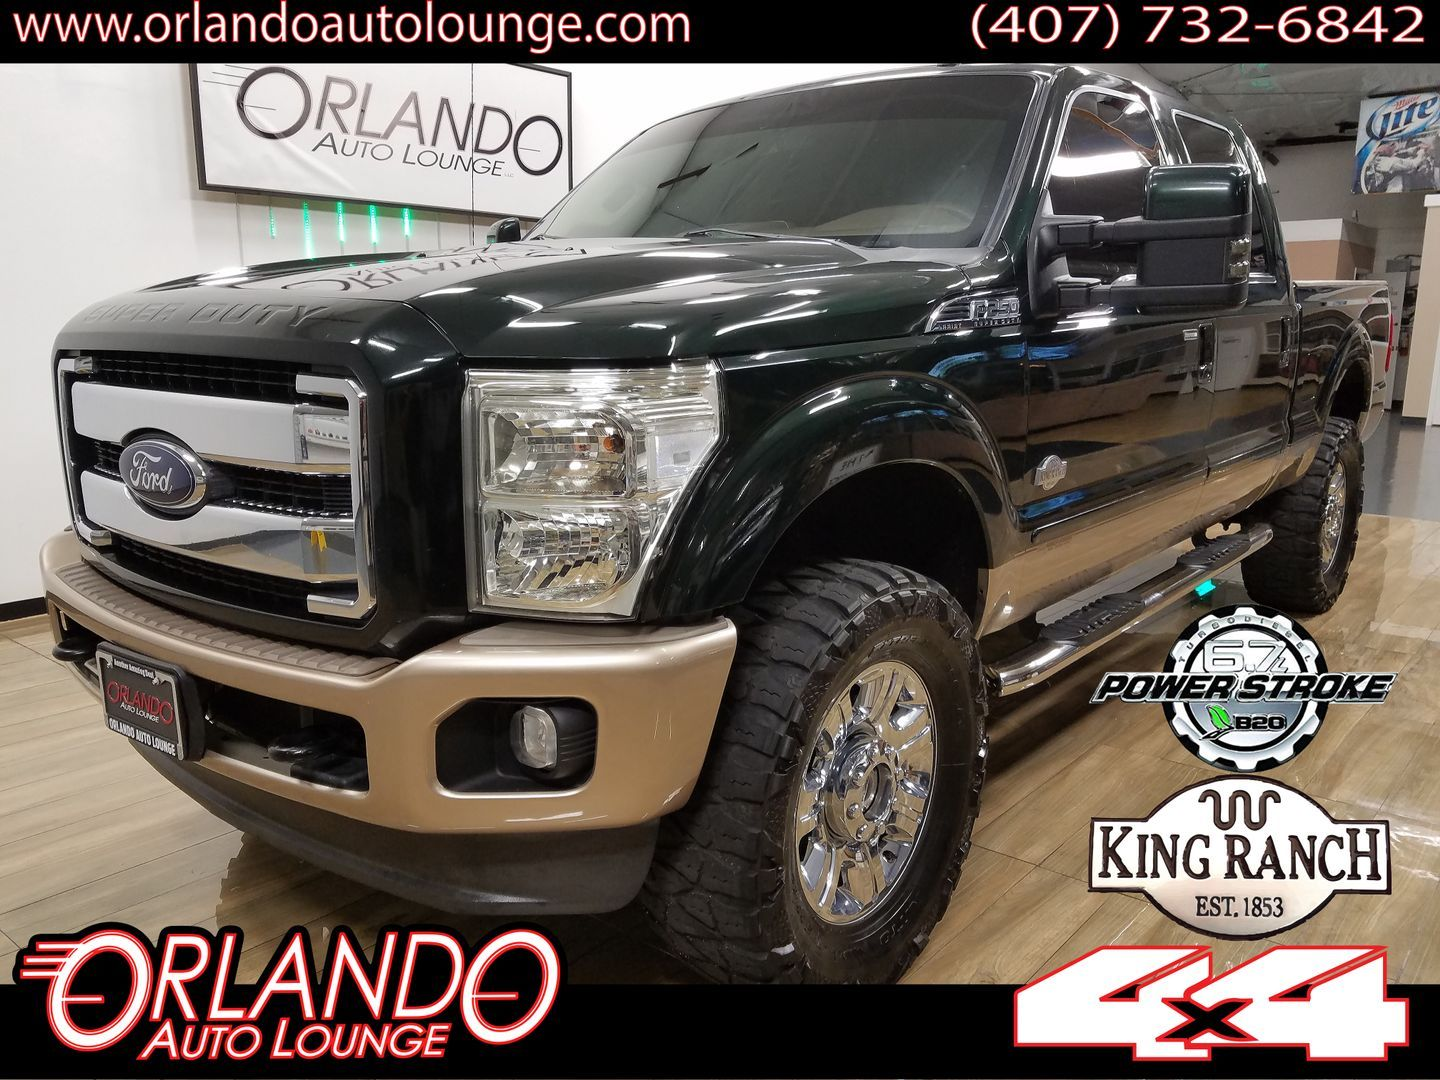 Ford Dealership Orlando >> 2013 Ford F250 Super Duty Crew Cab King Ranch Pickup 4d 6 3